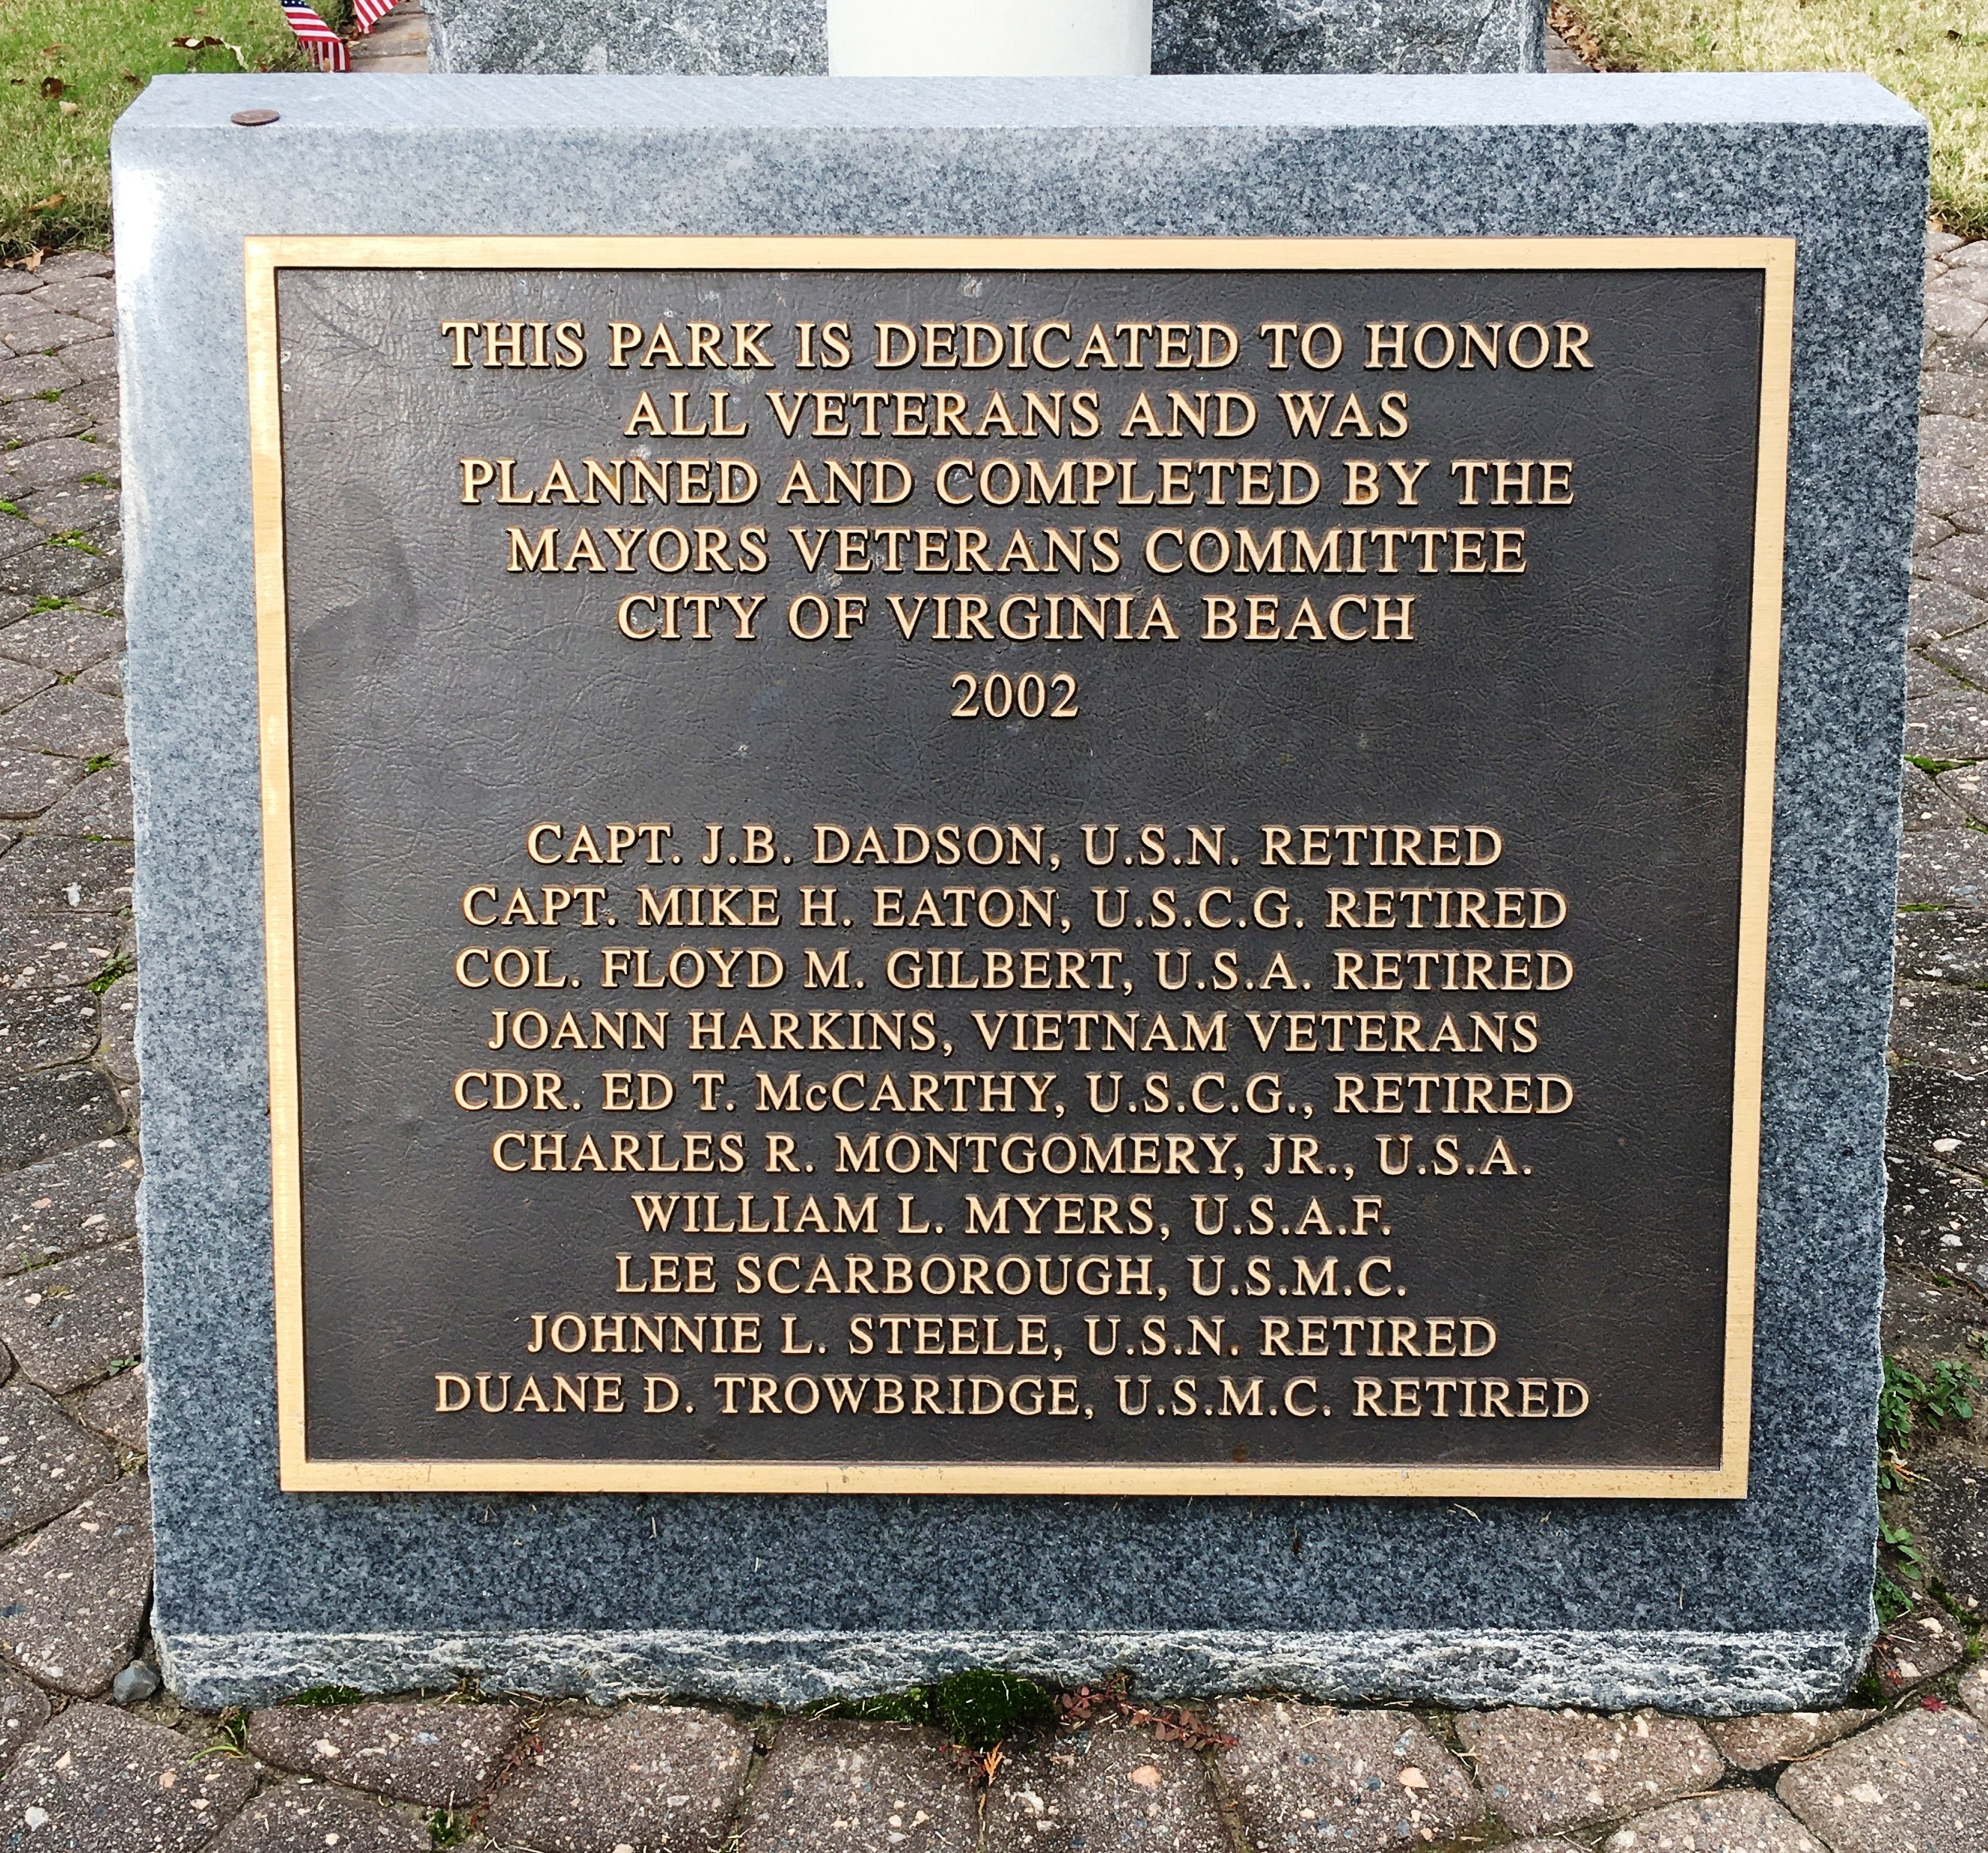 Veterans Memorial Dedication Plaque